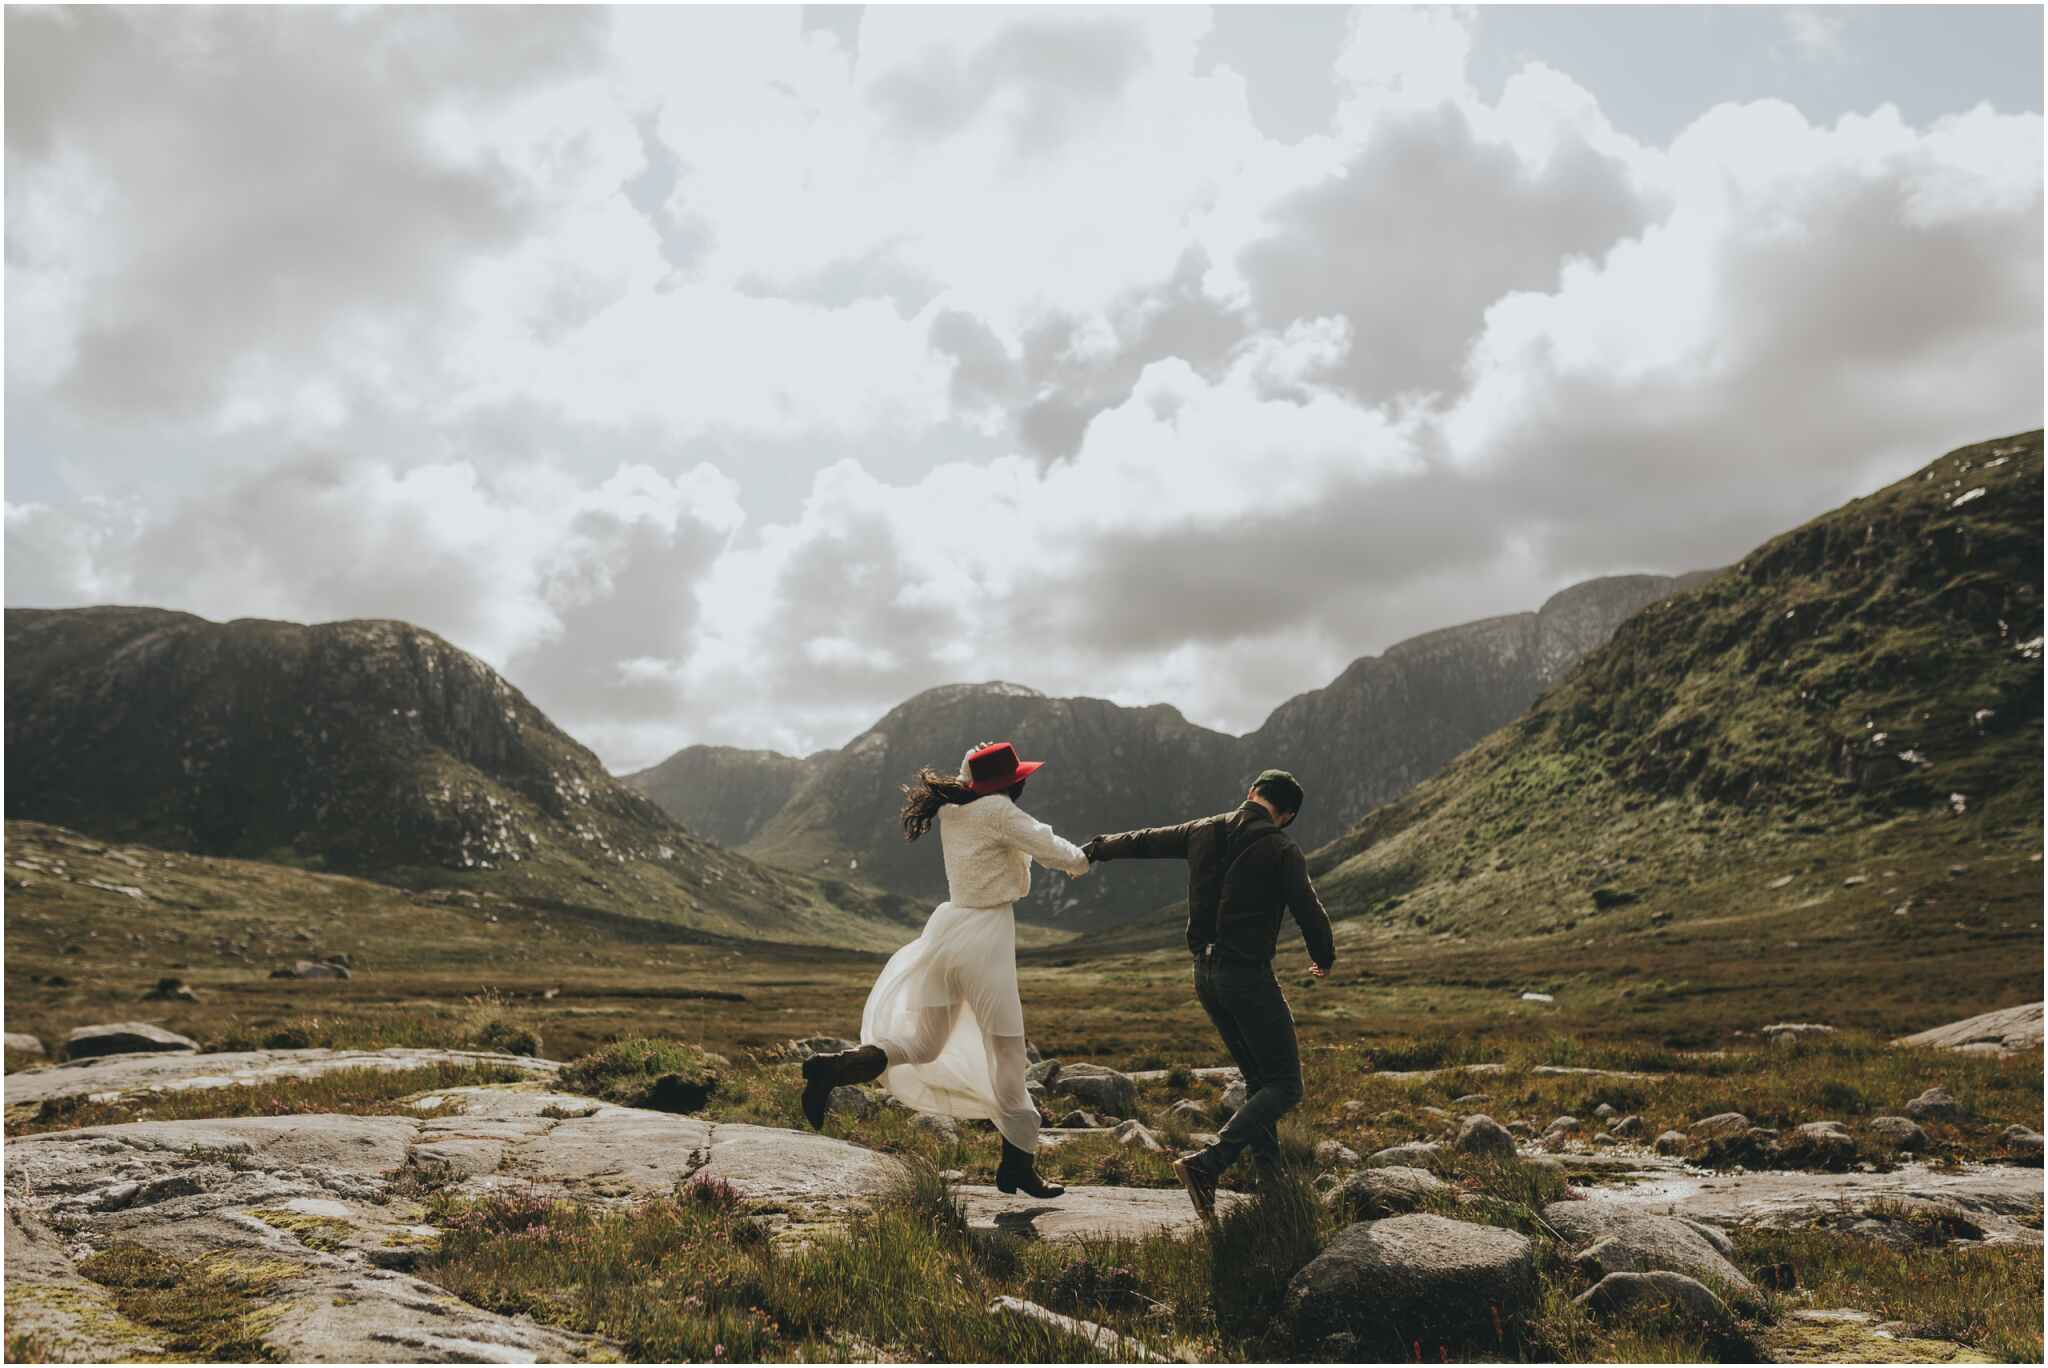 Rachel + David - Hiking Elopement in Muckish Mountain and Poisoned Glen, Donegal 30